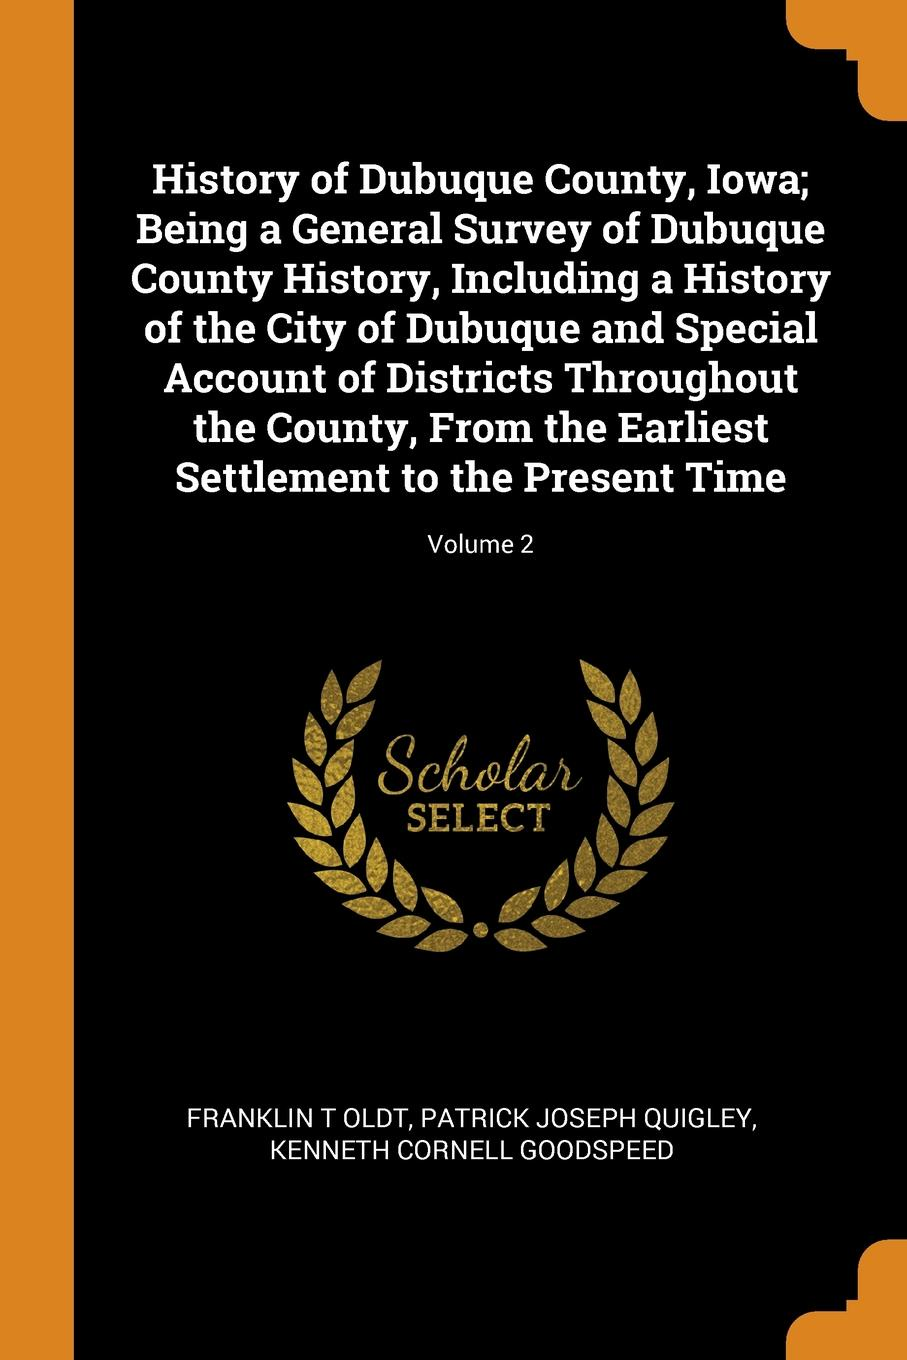 Franklin T Oldt, Patrick Joseph Quigley, Kenneth Cornell Goodspeed History of Dubuque County, Iowa; Being a General Survey of Dubuque County History, Including a History of the City of Dubuque and Special Account of Districts Throughout the County, From the Earliest Settlement to the Present Time; Volume 2 charles richard tuttle the centennial northwest an illustrated history of the northwest being a full and complete civil political and military history of this great section of the united states from its earliest settlement to the present time